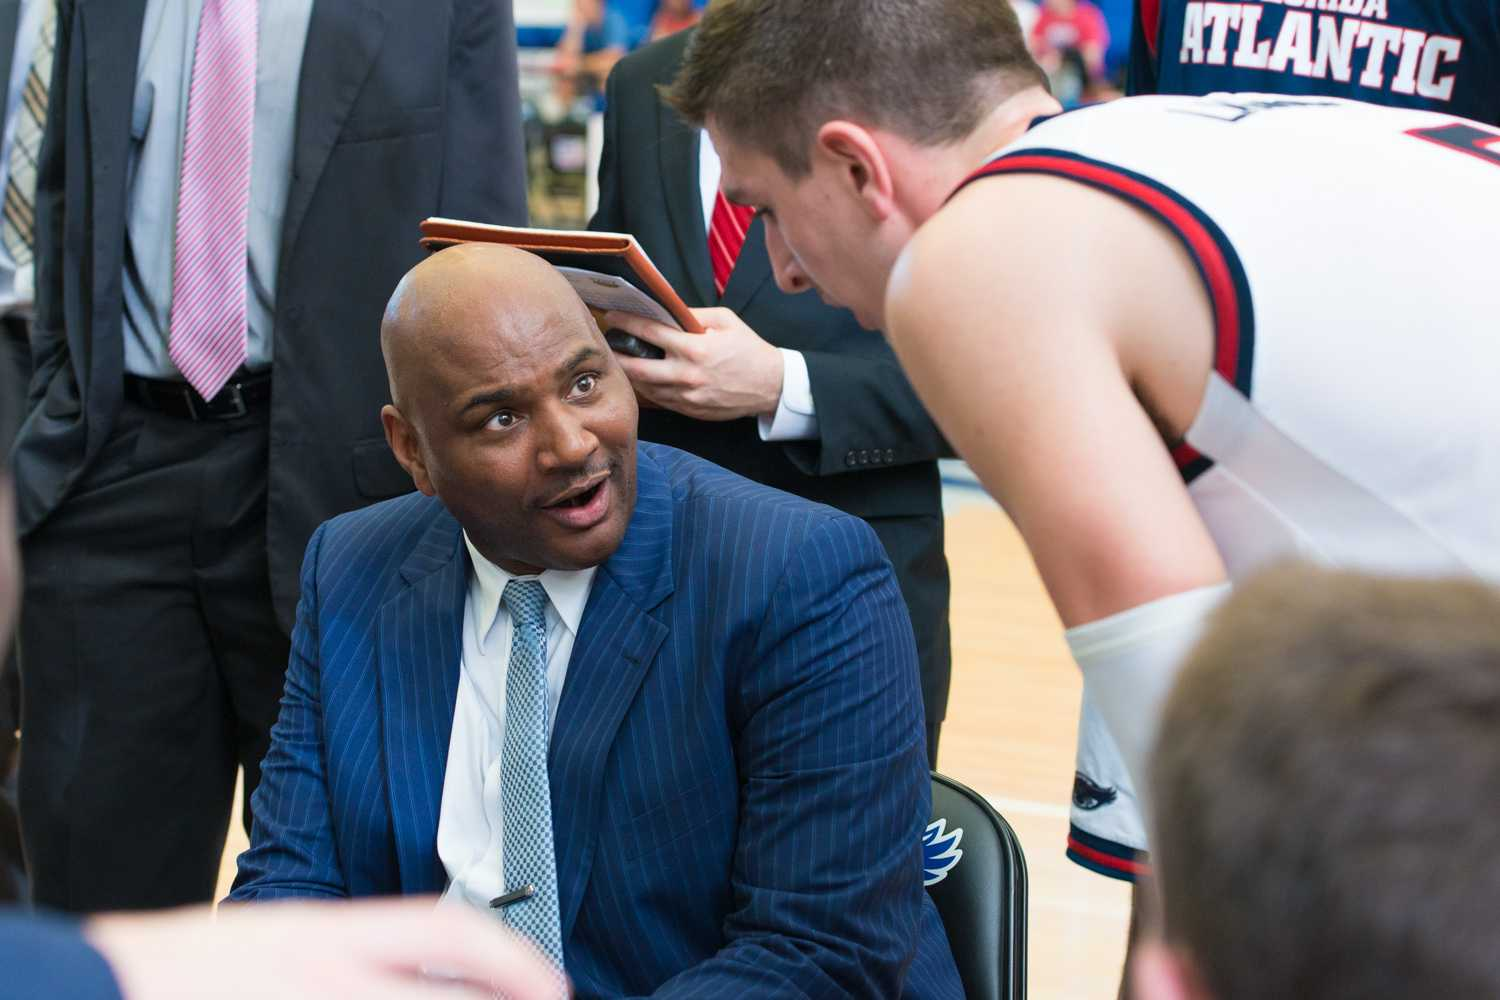 FAU Men's Basketball Coach Michael Curry $325,000 annual salary. Photo by Max Jackson | Photo Editor